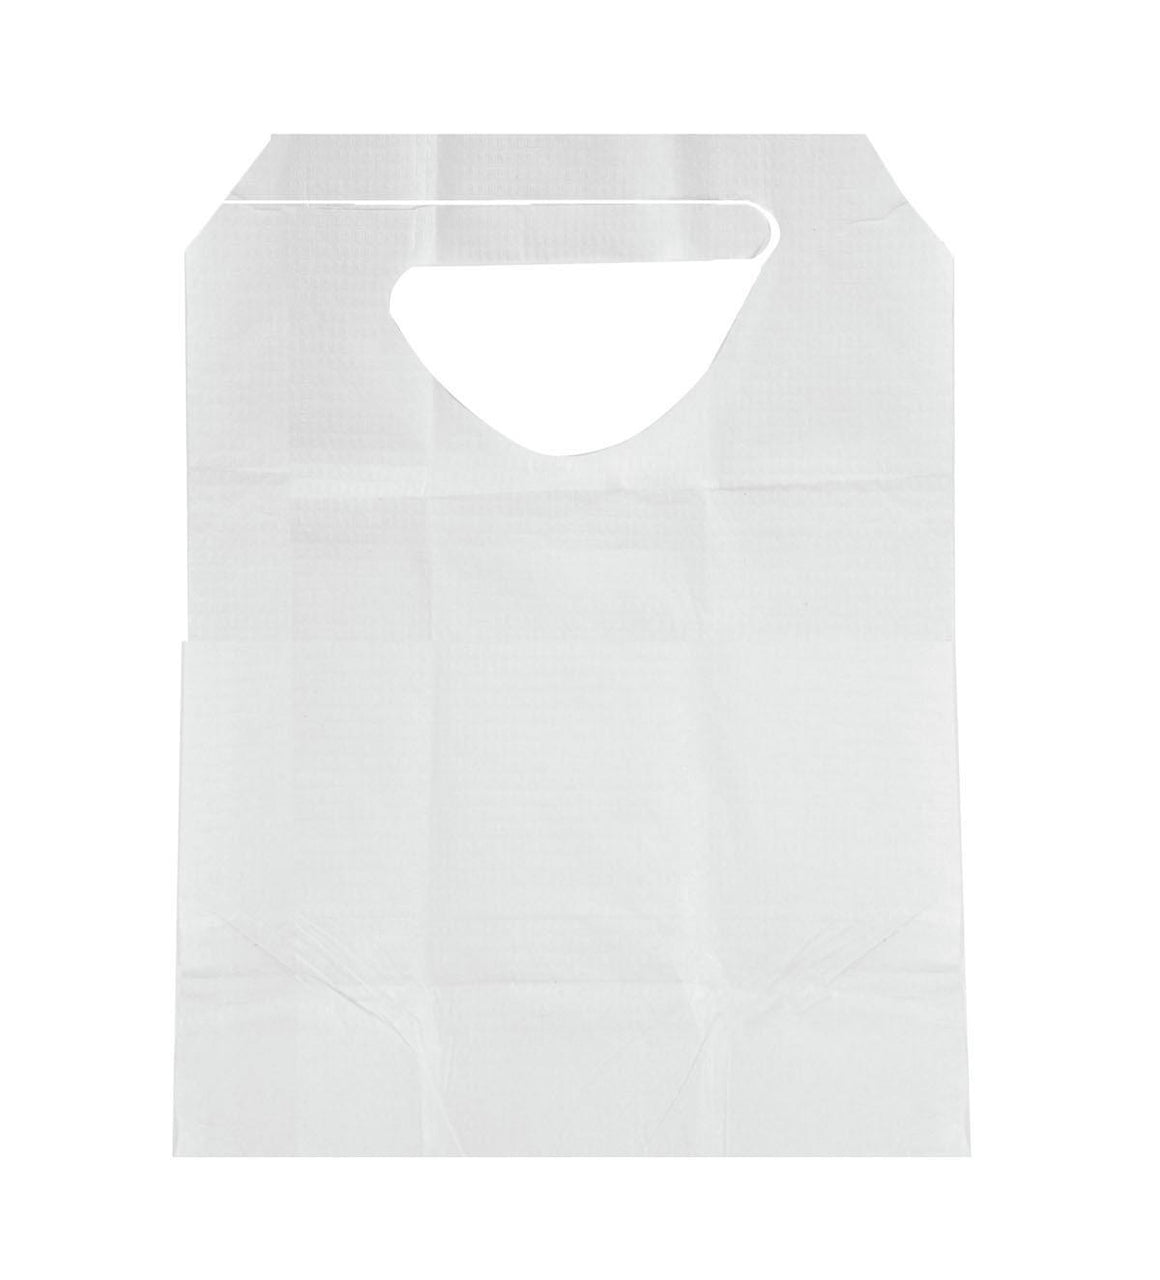 Disposable Adult Bibs,White, Case of 300